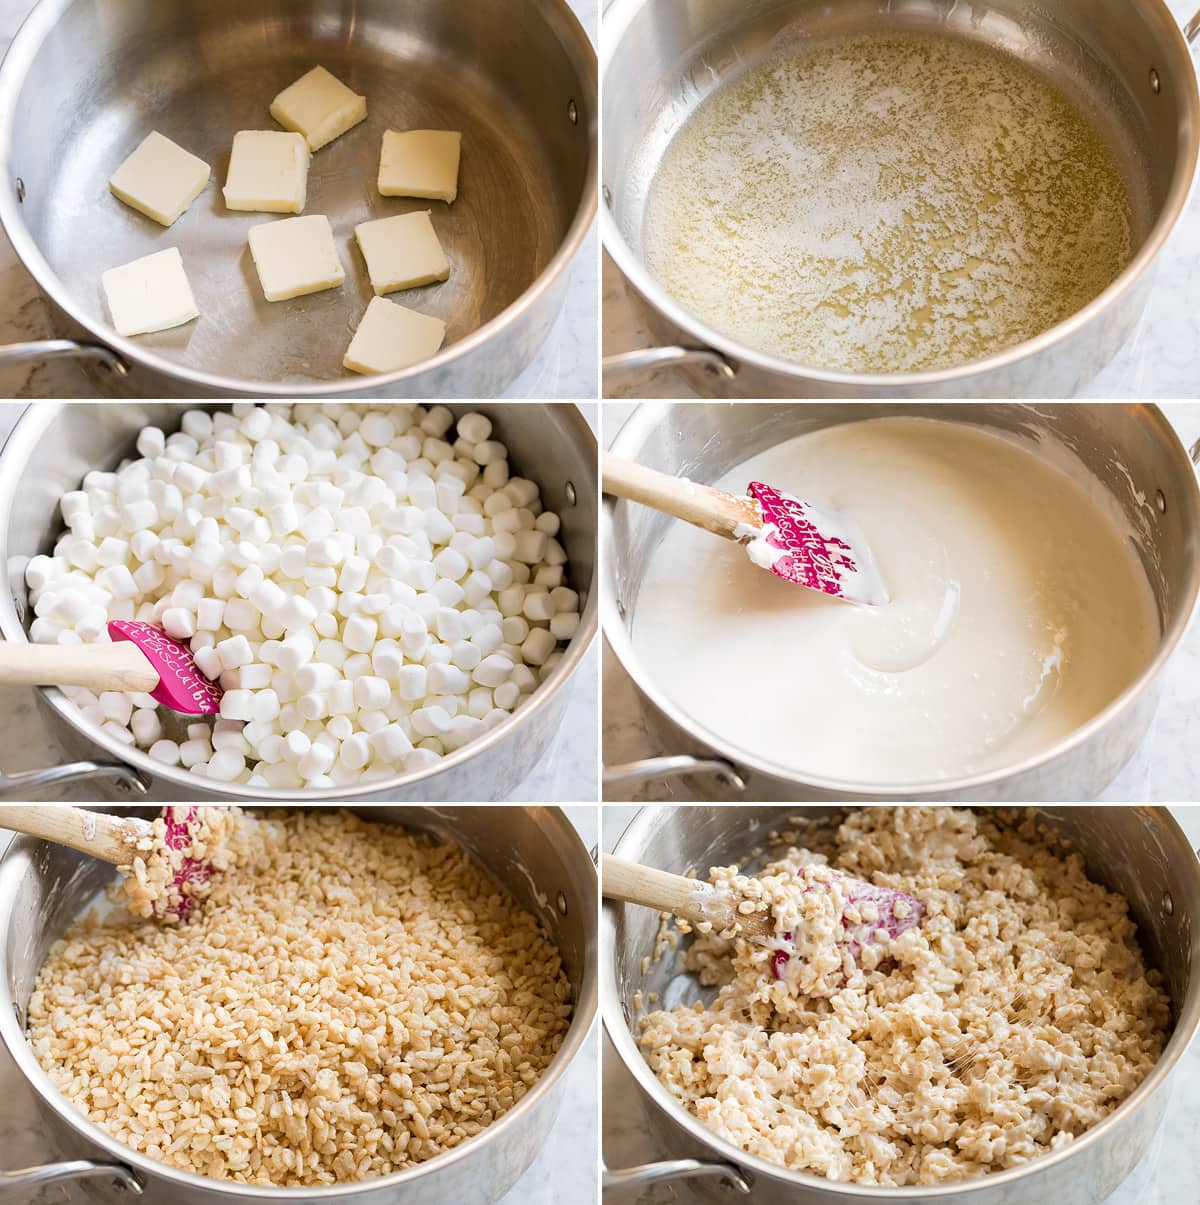 Collage image of 6 steps to make rice krispies treats in a pot. Includes melting butter, melting marshmallows and stirring in rice krispies cereal.